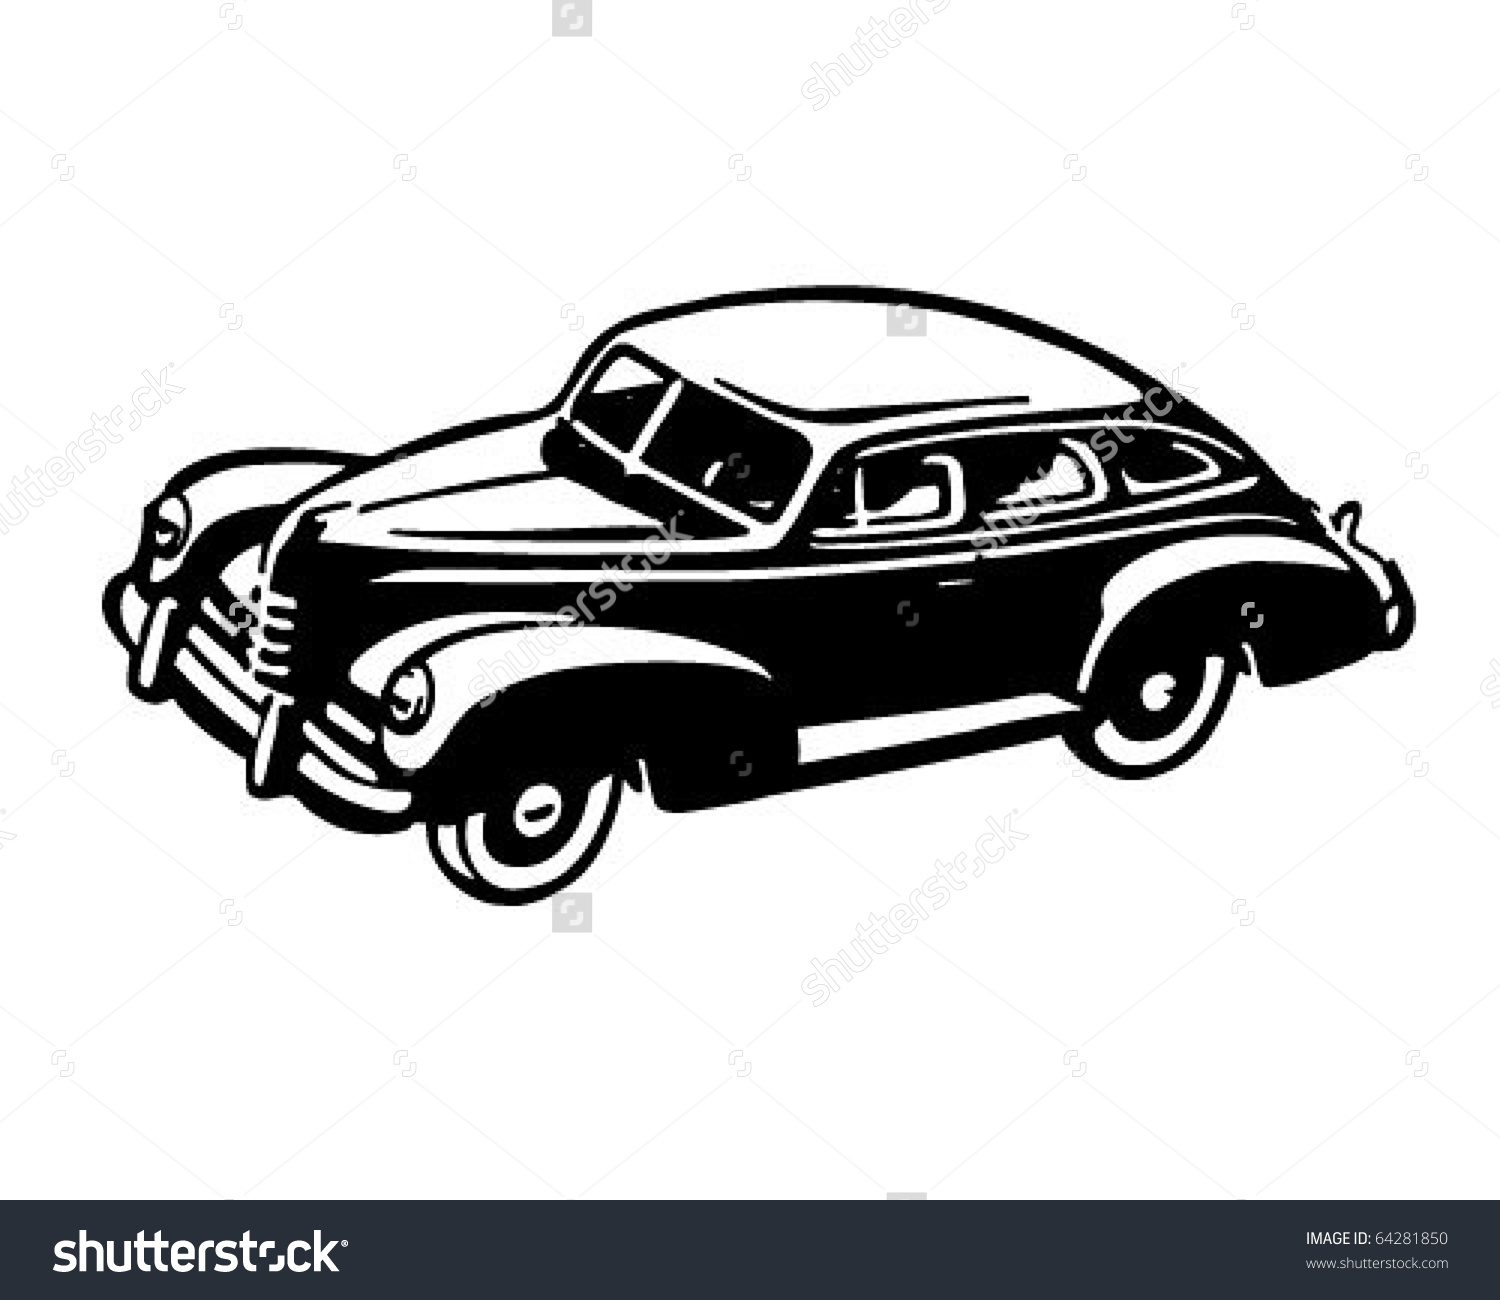 Forties Car Retro Clipart Illustration Stock Vector 64281850.